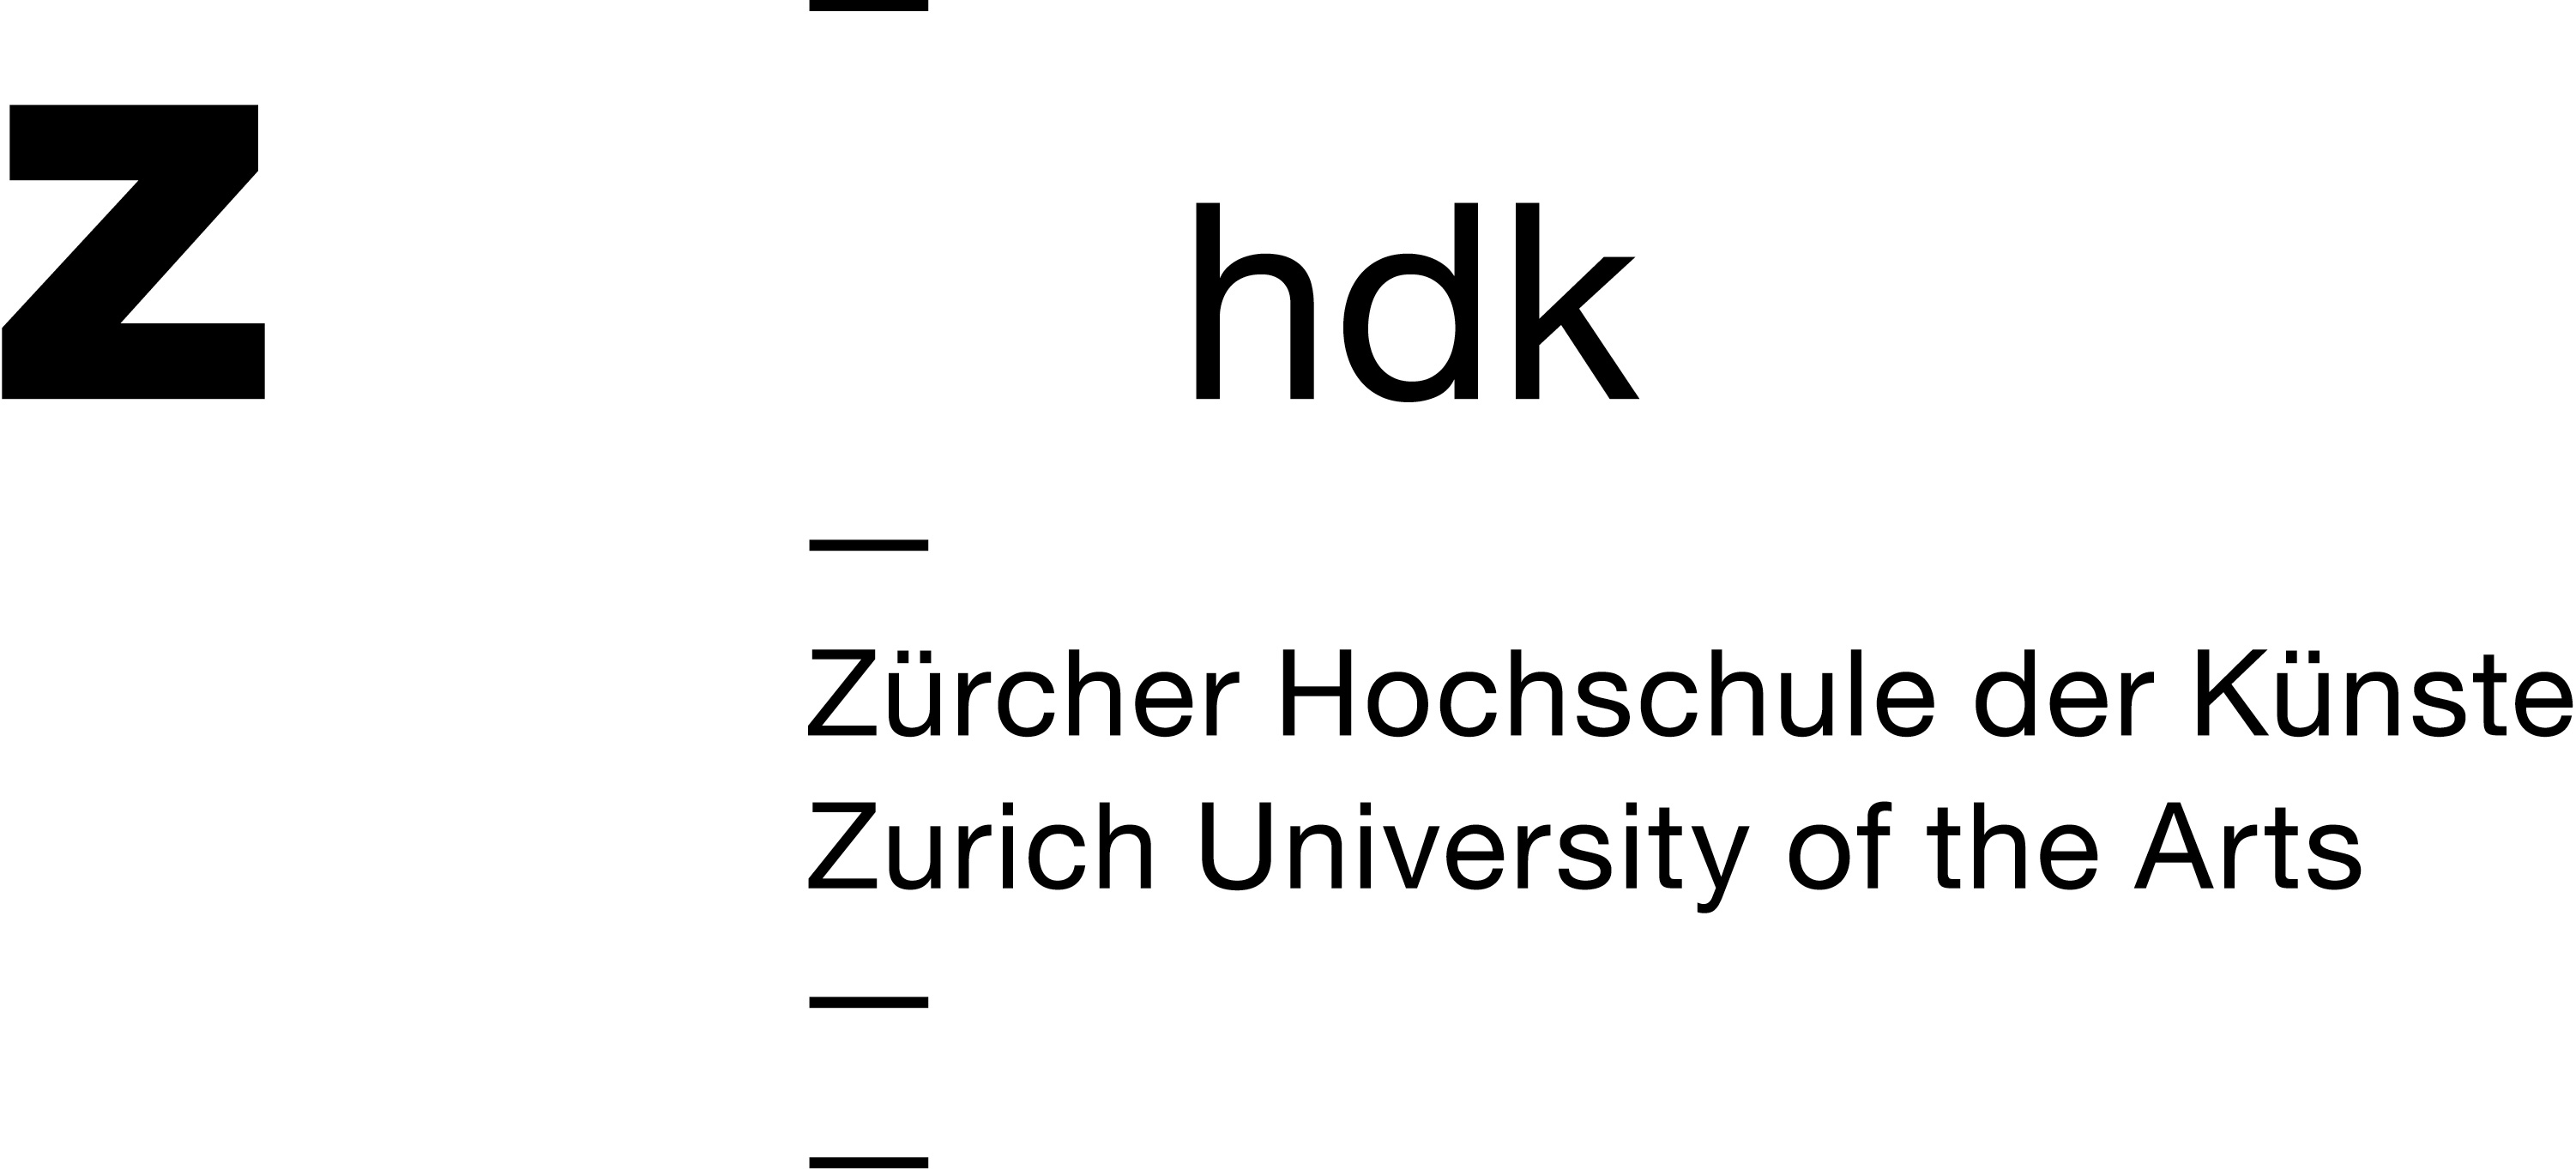 Zurich University of the Arts (ZHdK)